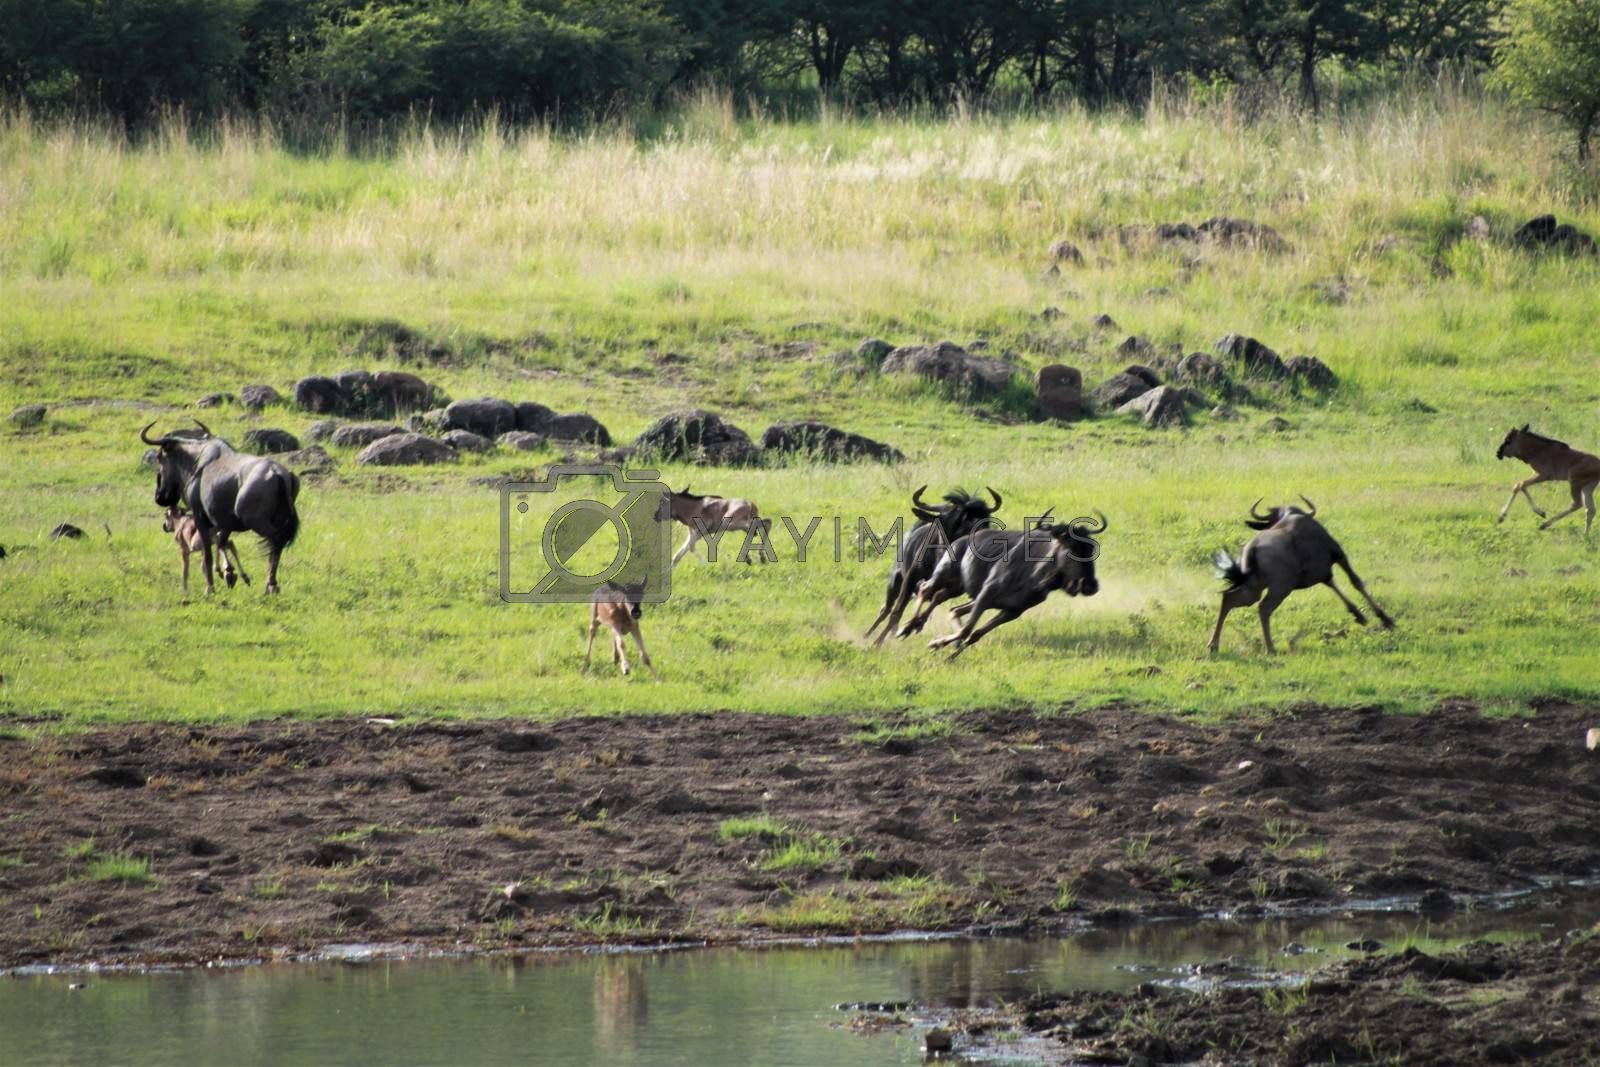 Wildebeests and her calves are running around fast near a waterhole